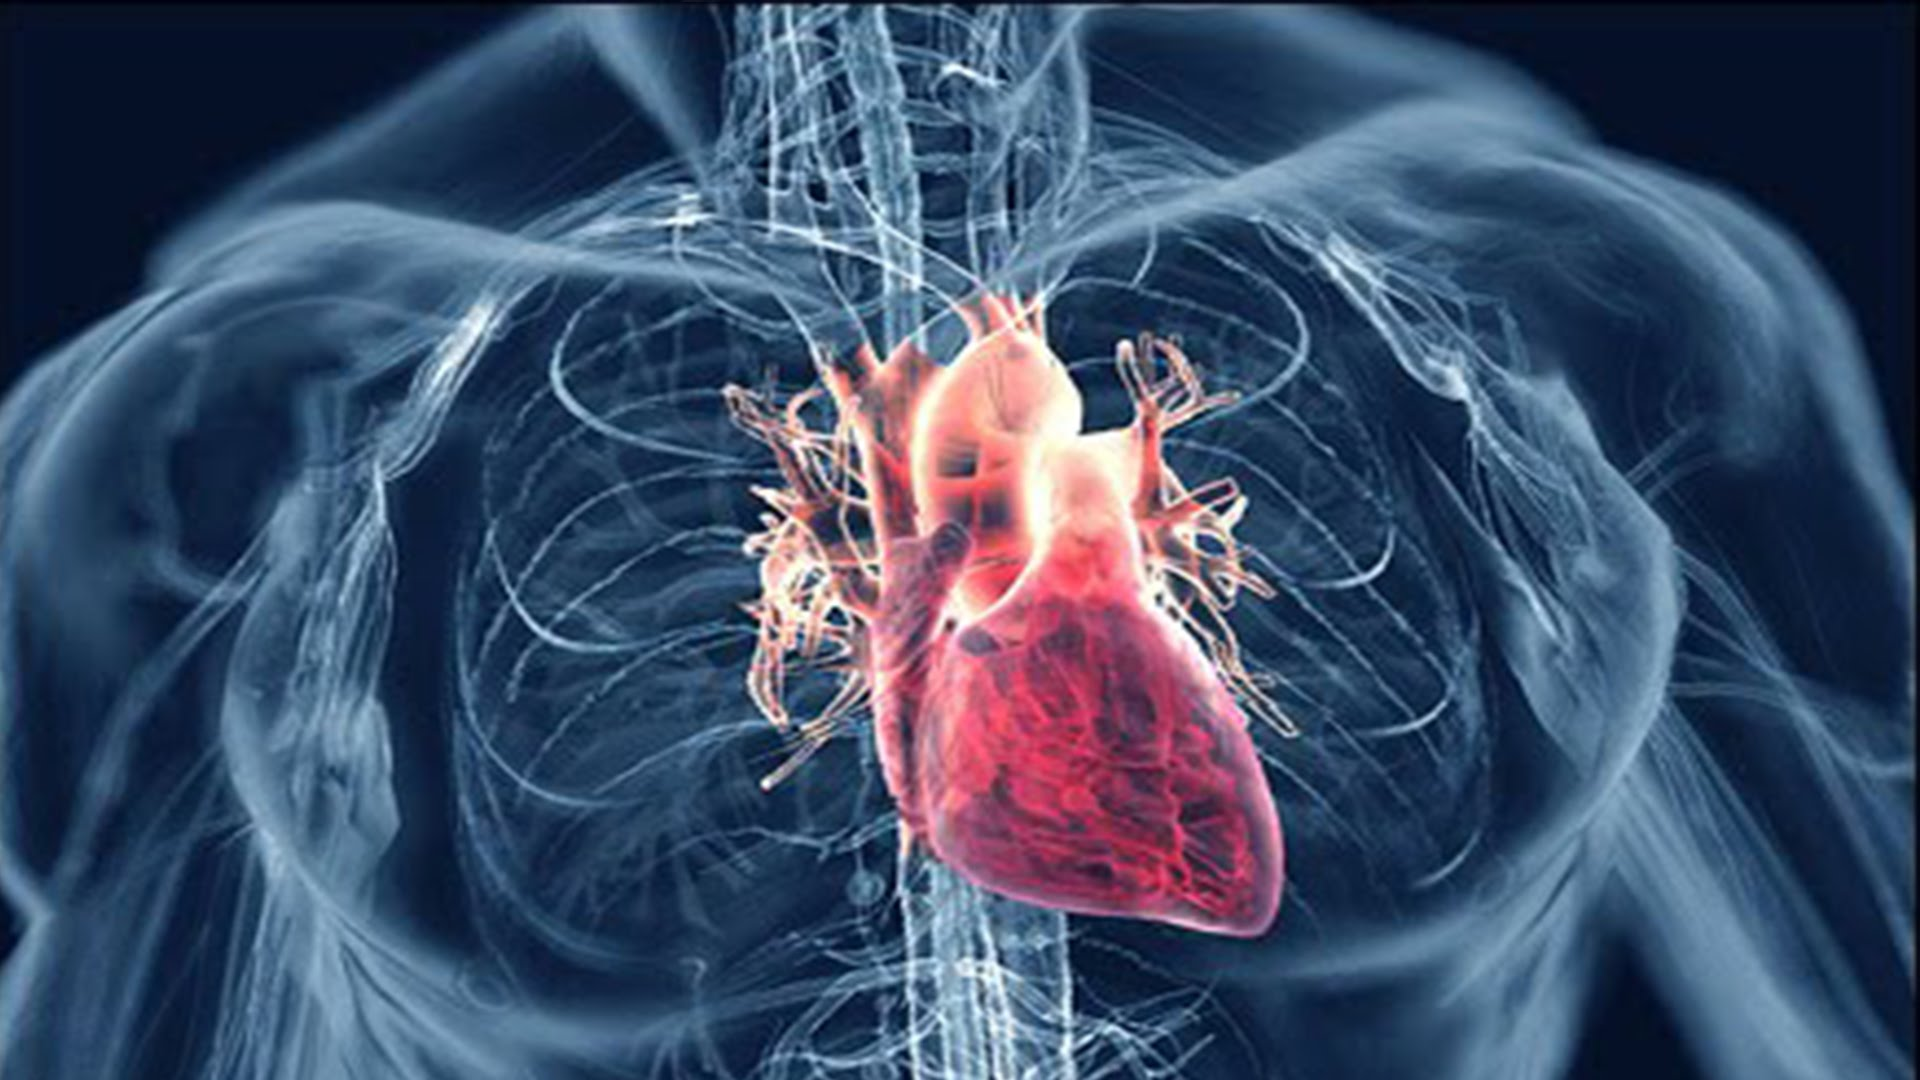 Heart diseases : Cardiologists caution against smoking, alcohol